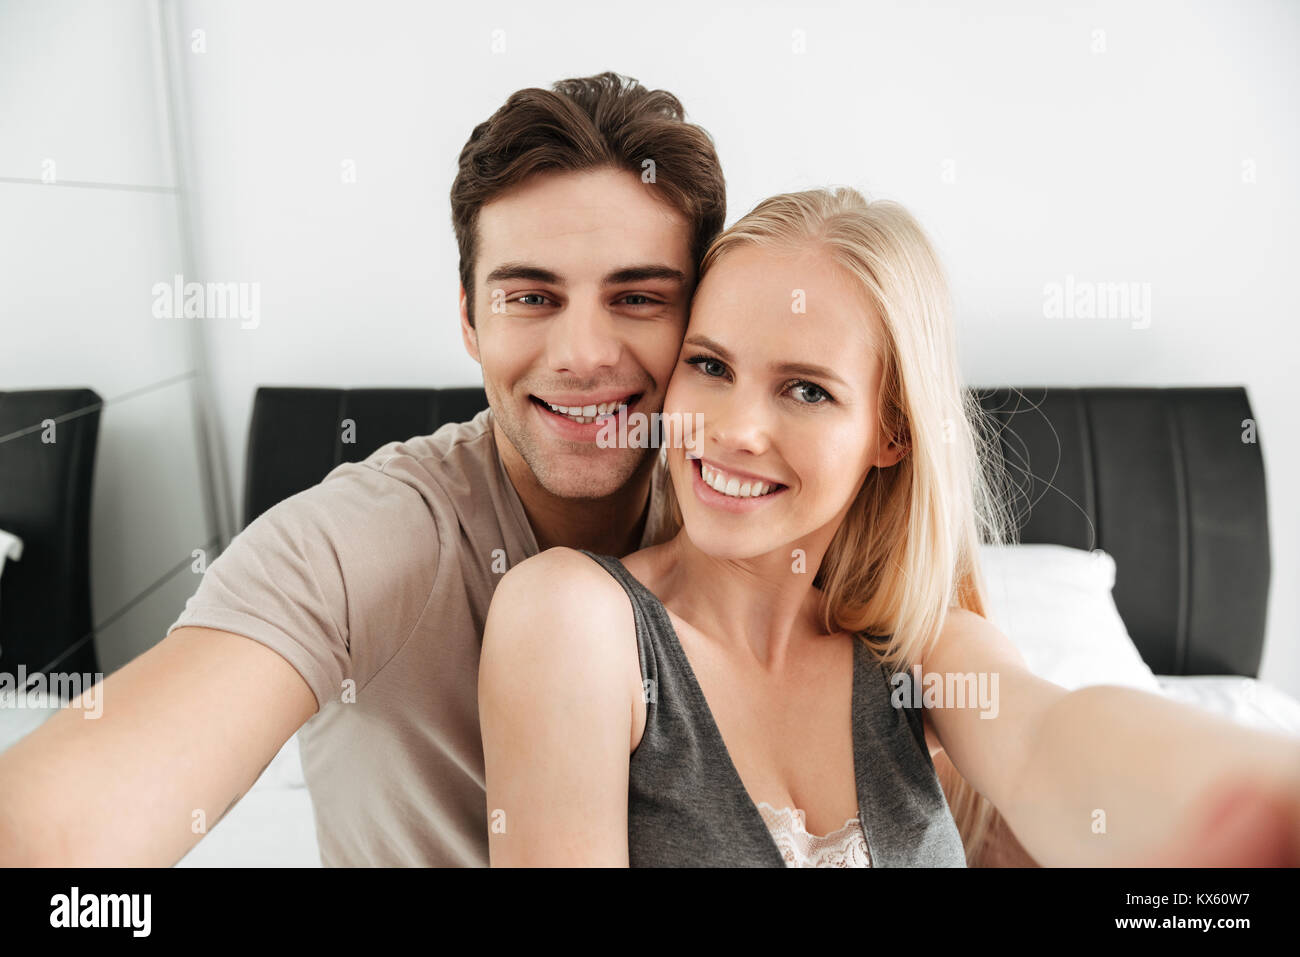 Young Couple Making Love Bed Stock Photos  Young Couple Making Love Bed Stock Images -4806